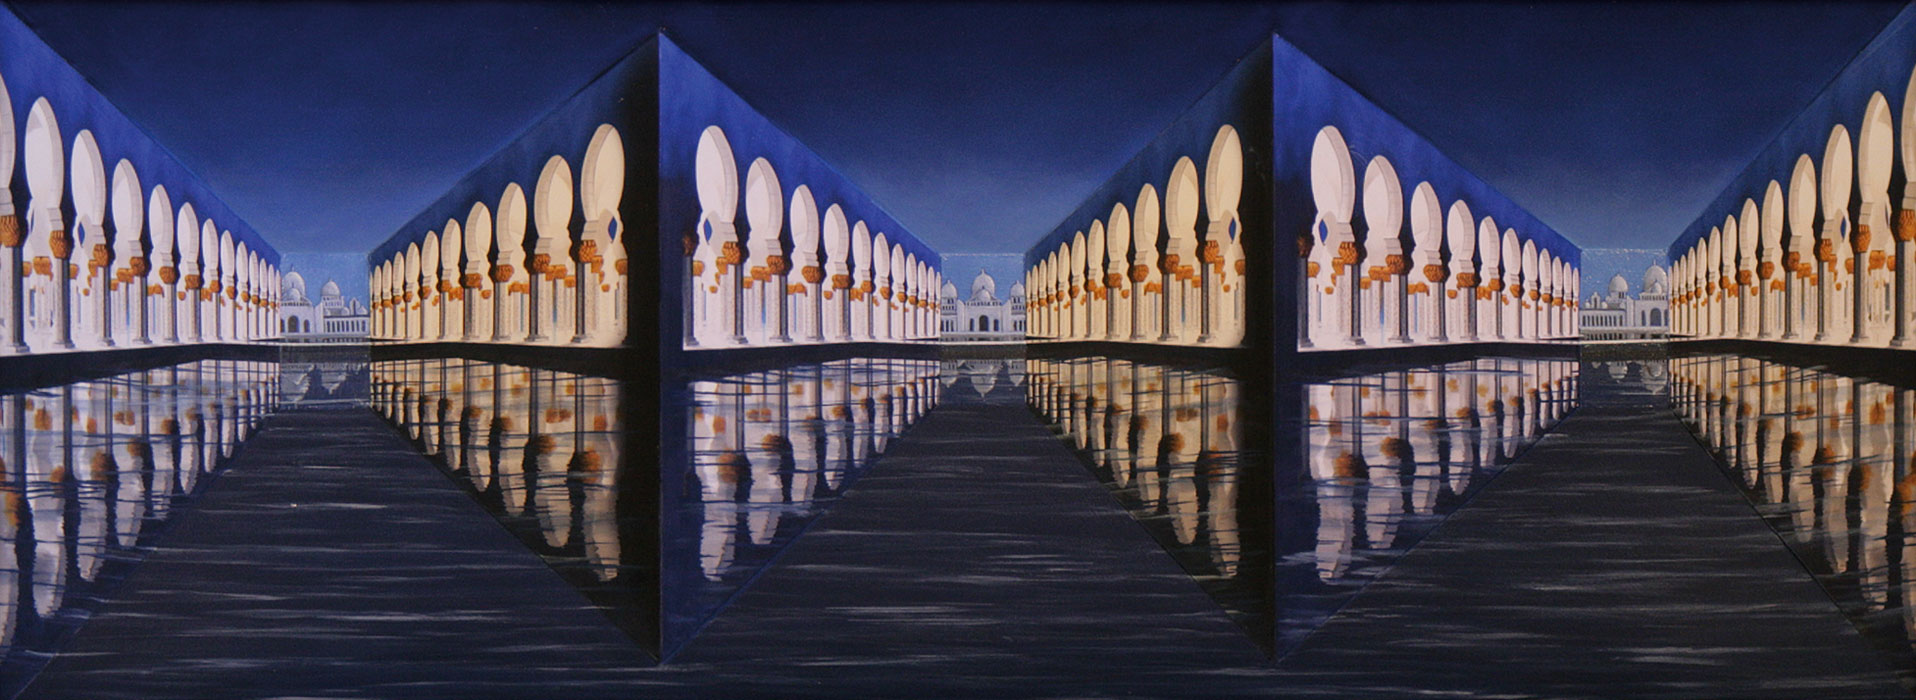 Colonnades in Moonlight <p>2005 | Edition 3 | 47 X 94 X 12 cm / 18½ x 37 x 4¾ in</p>